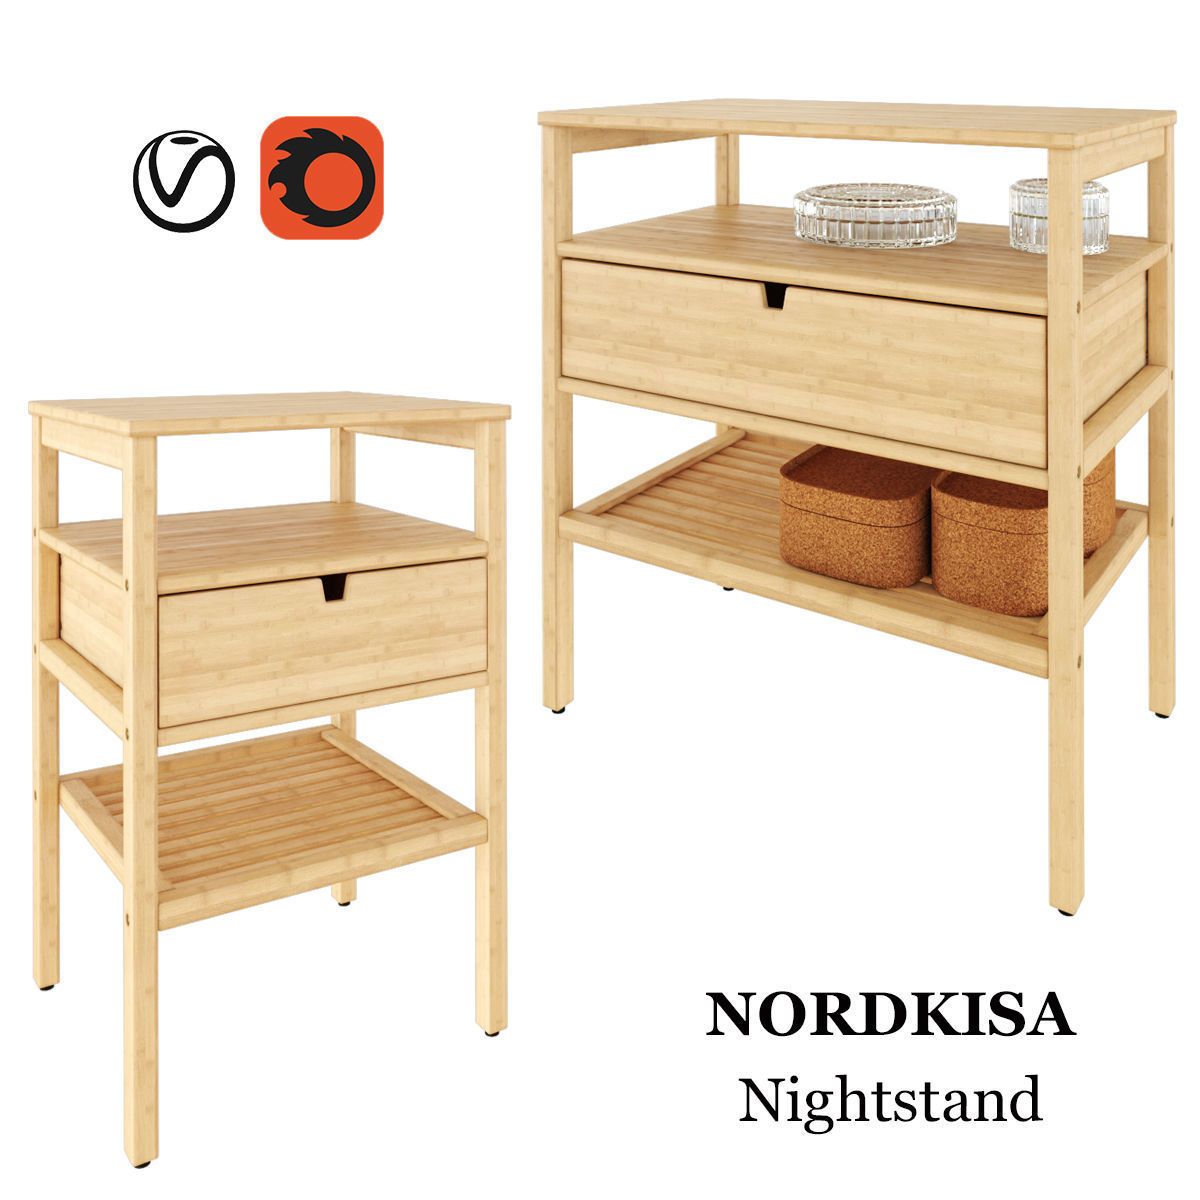 Ikea Nordkisa Nightstand 3d Model